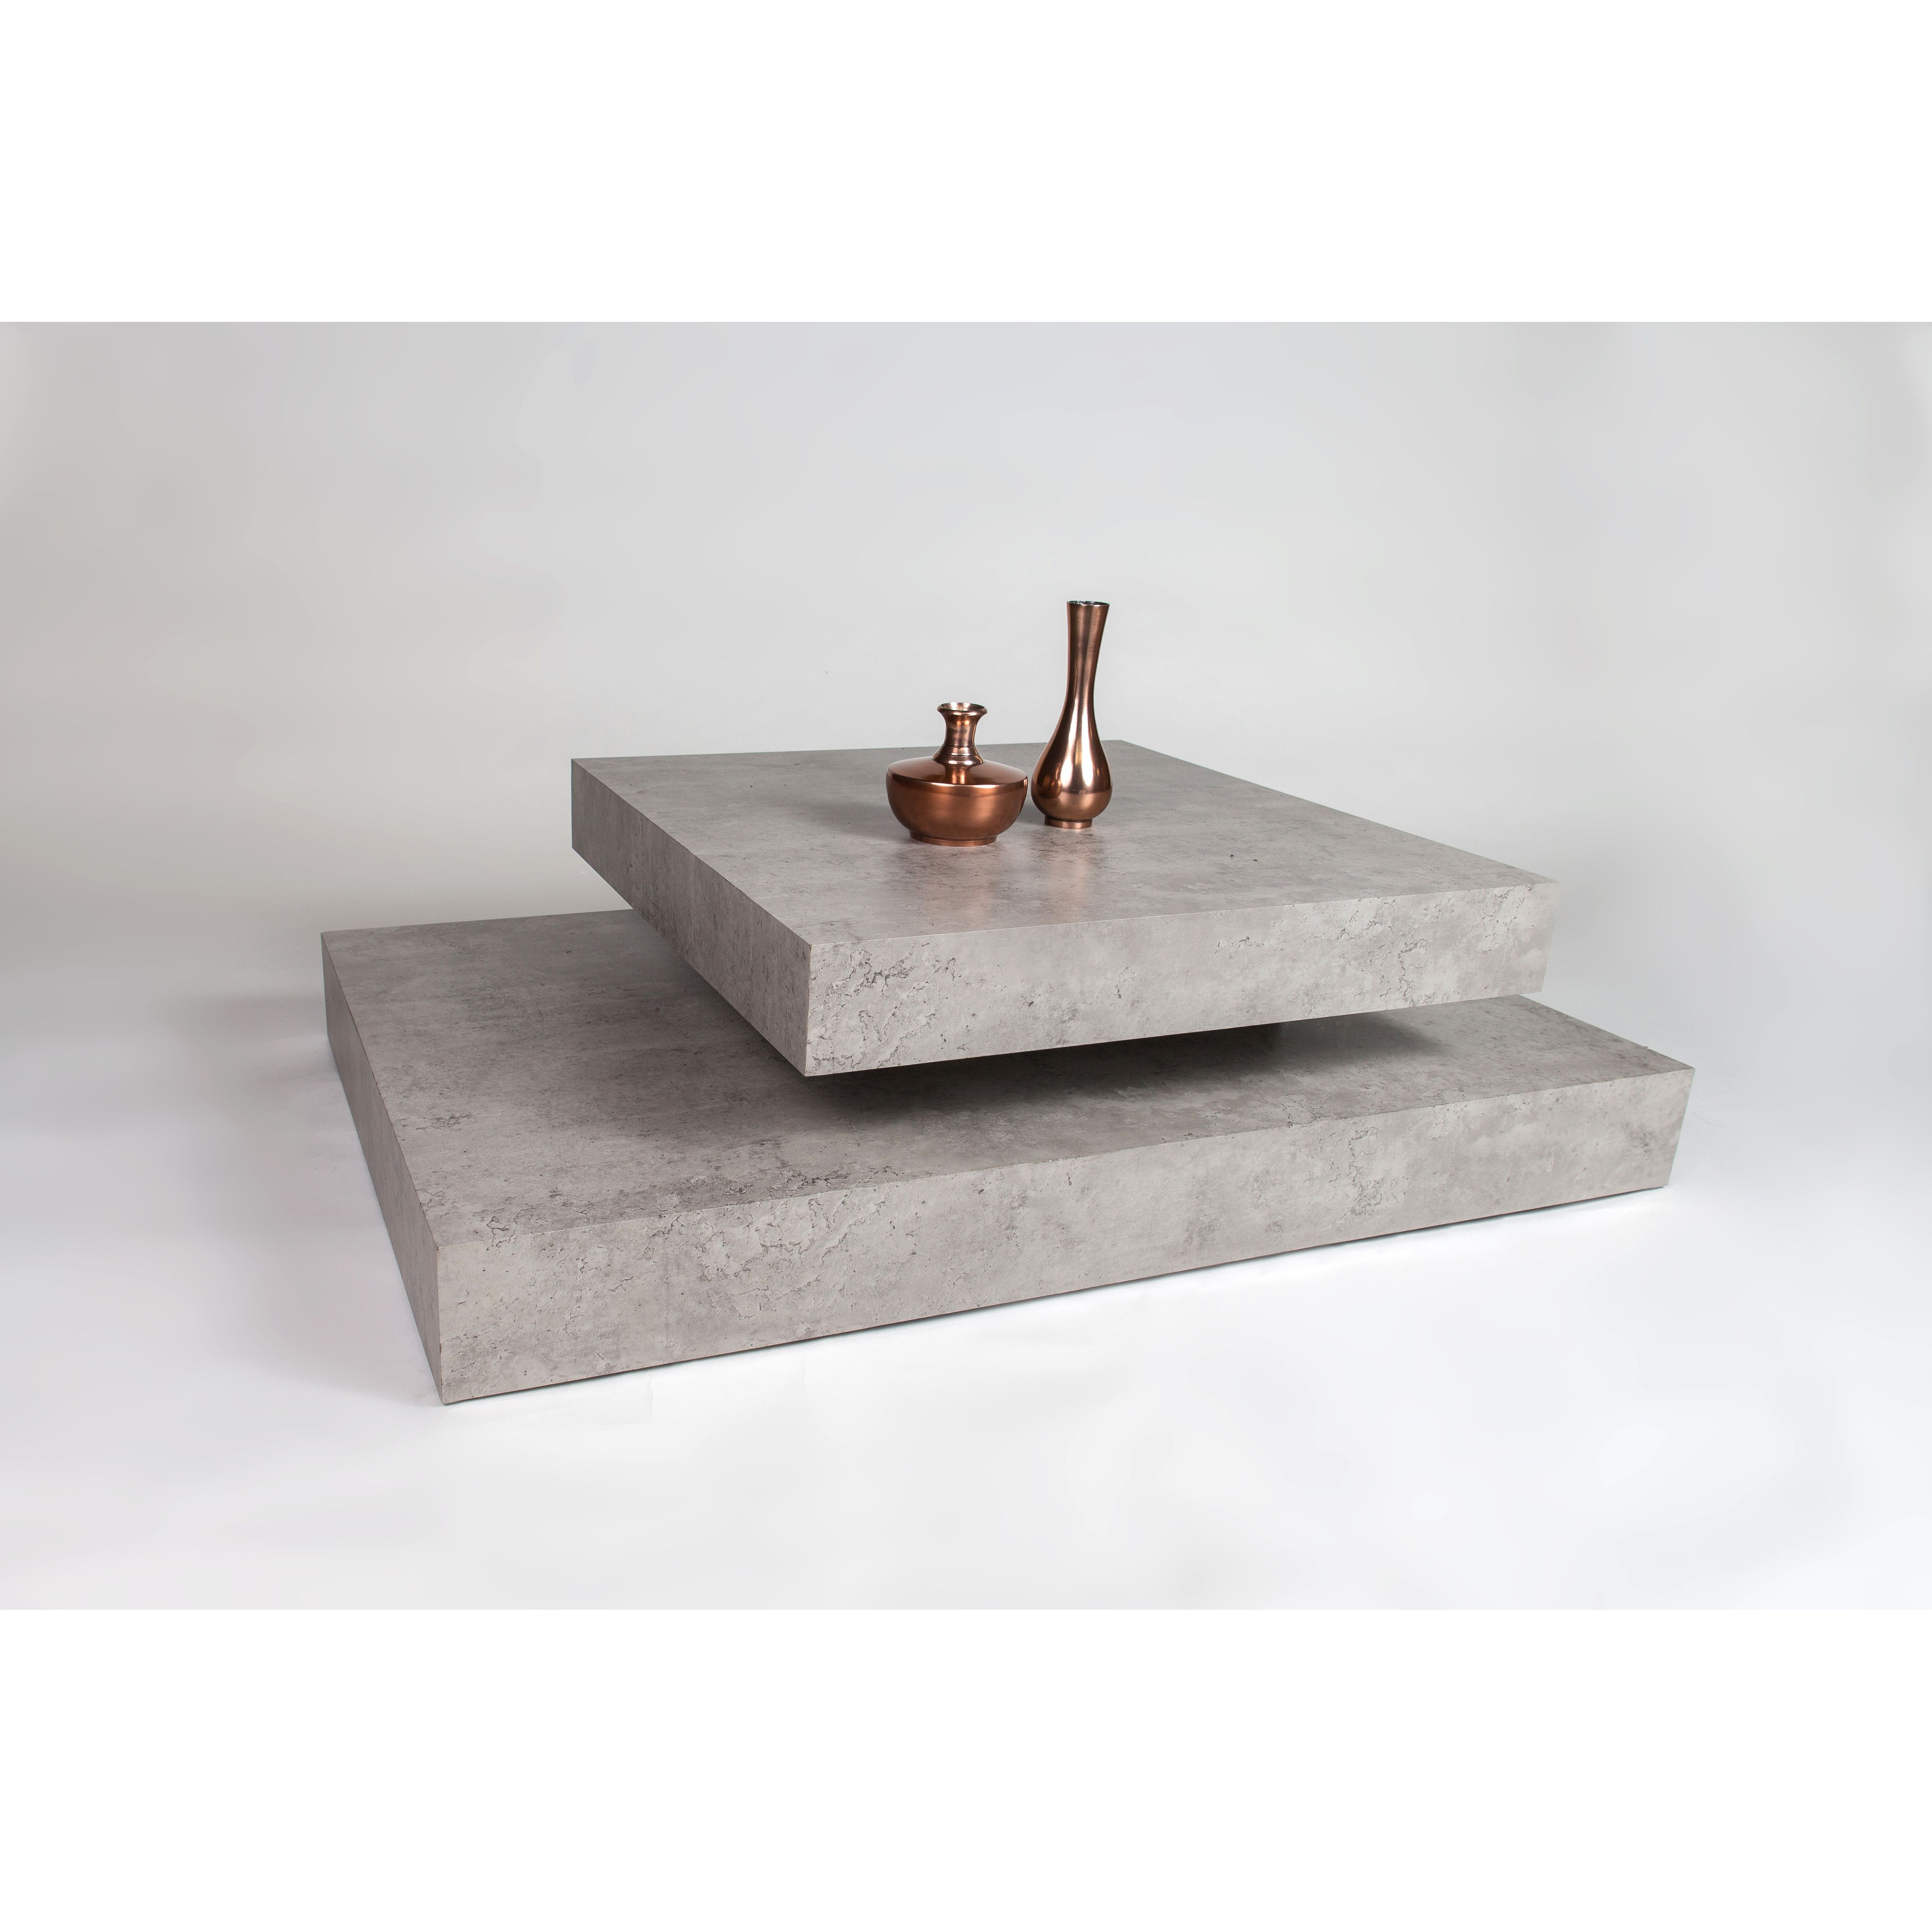 Couchtisch Hl Design Couchtisch Linienstrasse Boom Ting Pinterest Table Design